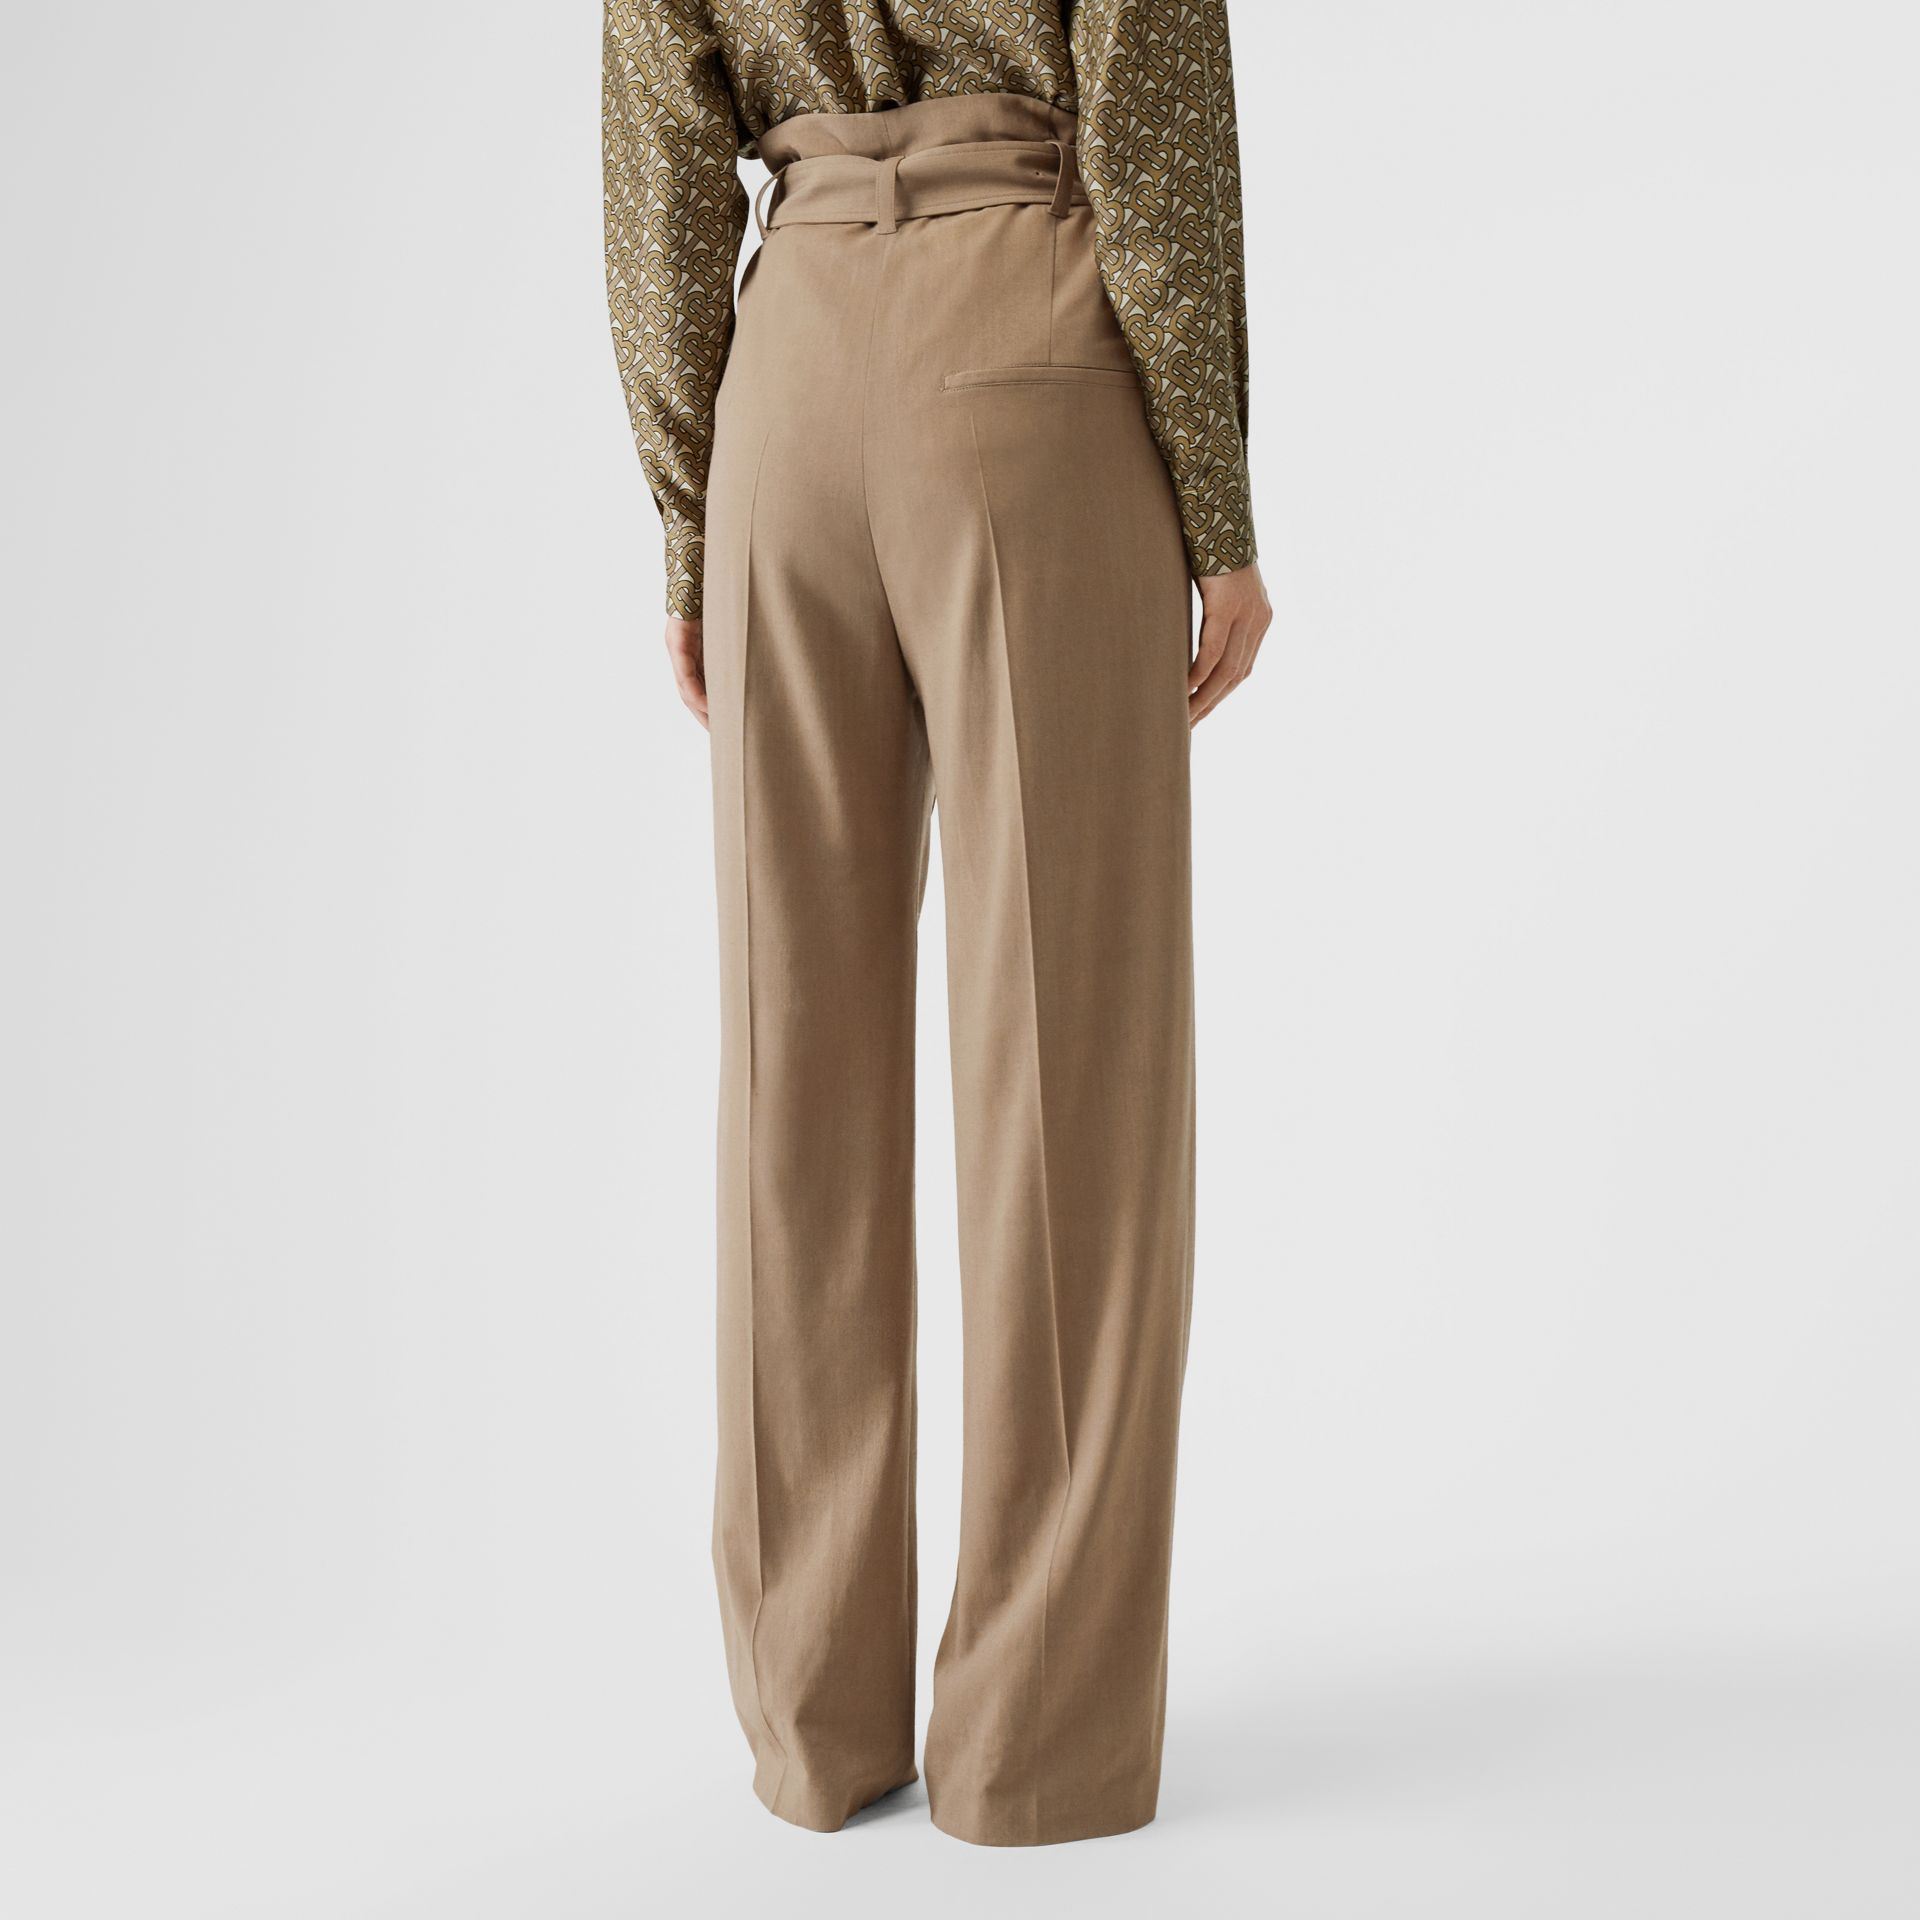 Wool Blend High-waisted Trousers in Warm Taupe - Women | Burberry - gallery image 2